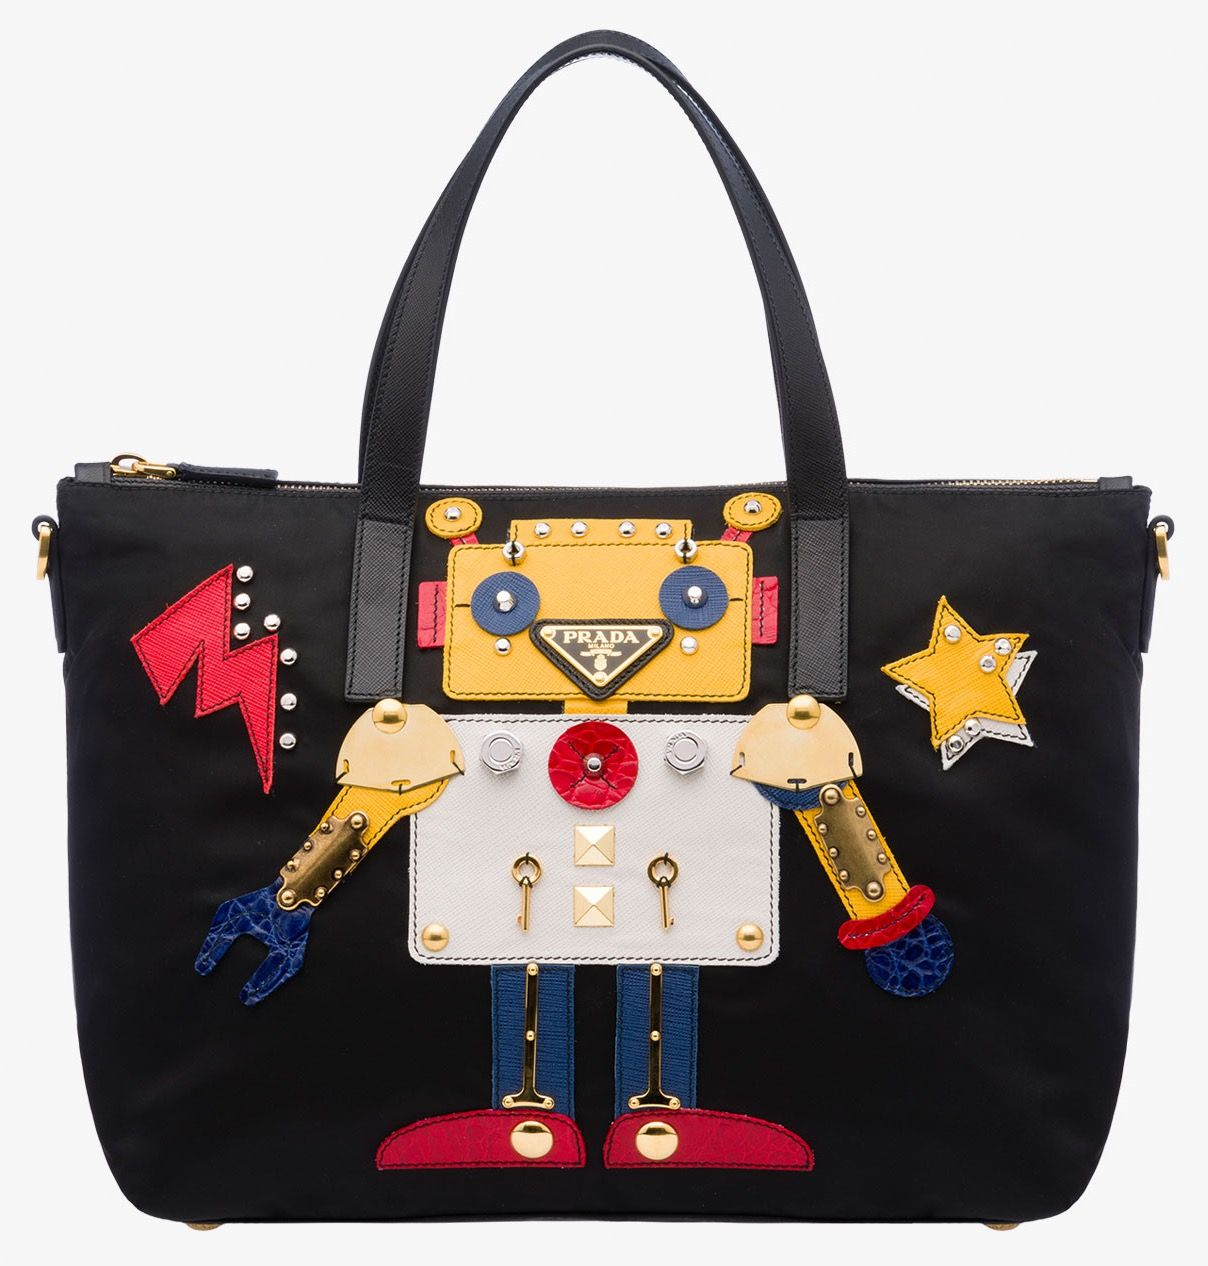 411ee28d3813 Prada Robot Limited Edition Capsule Collection